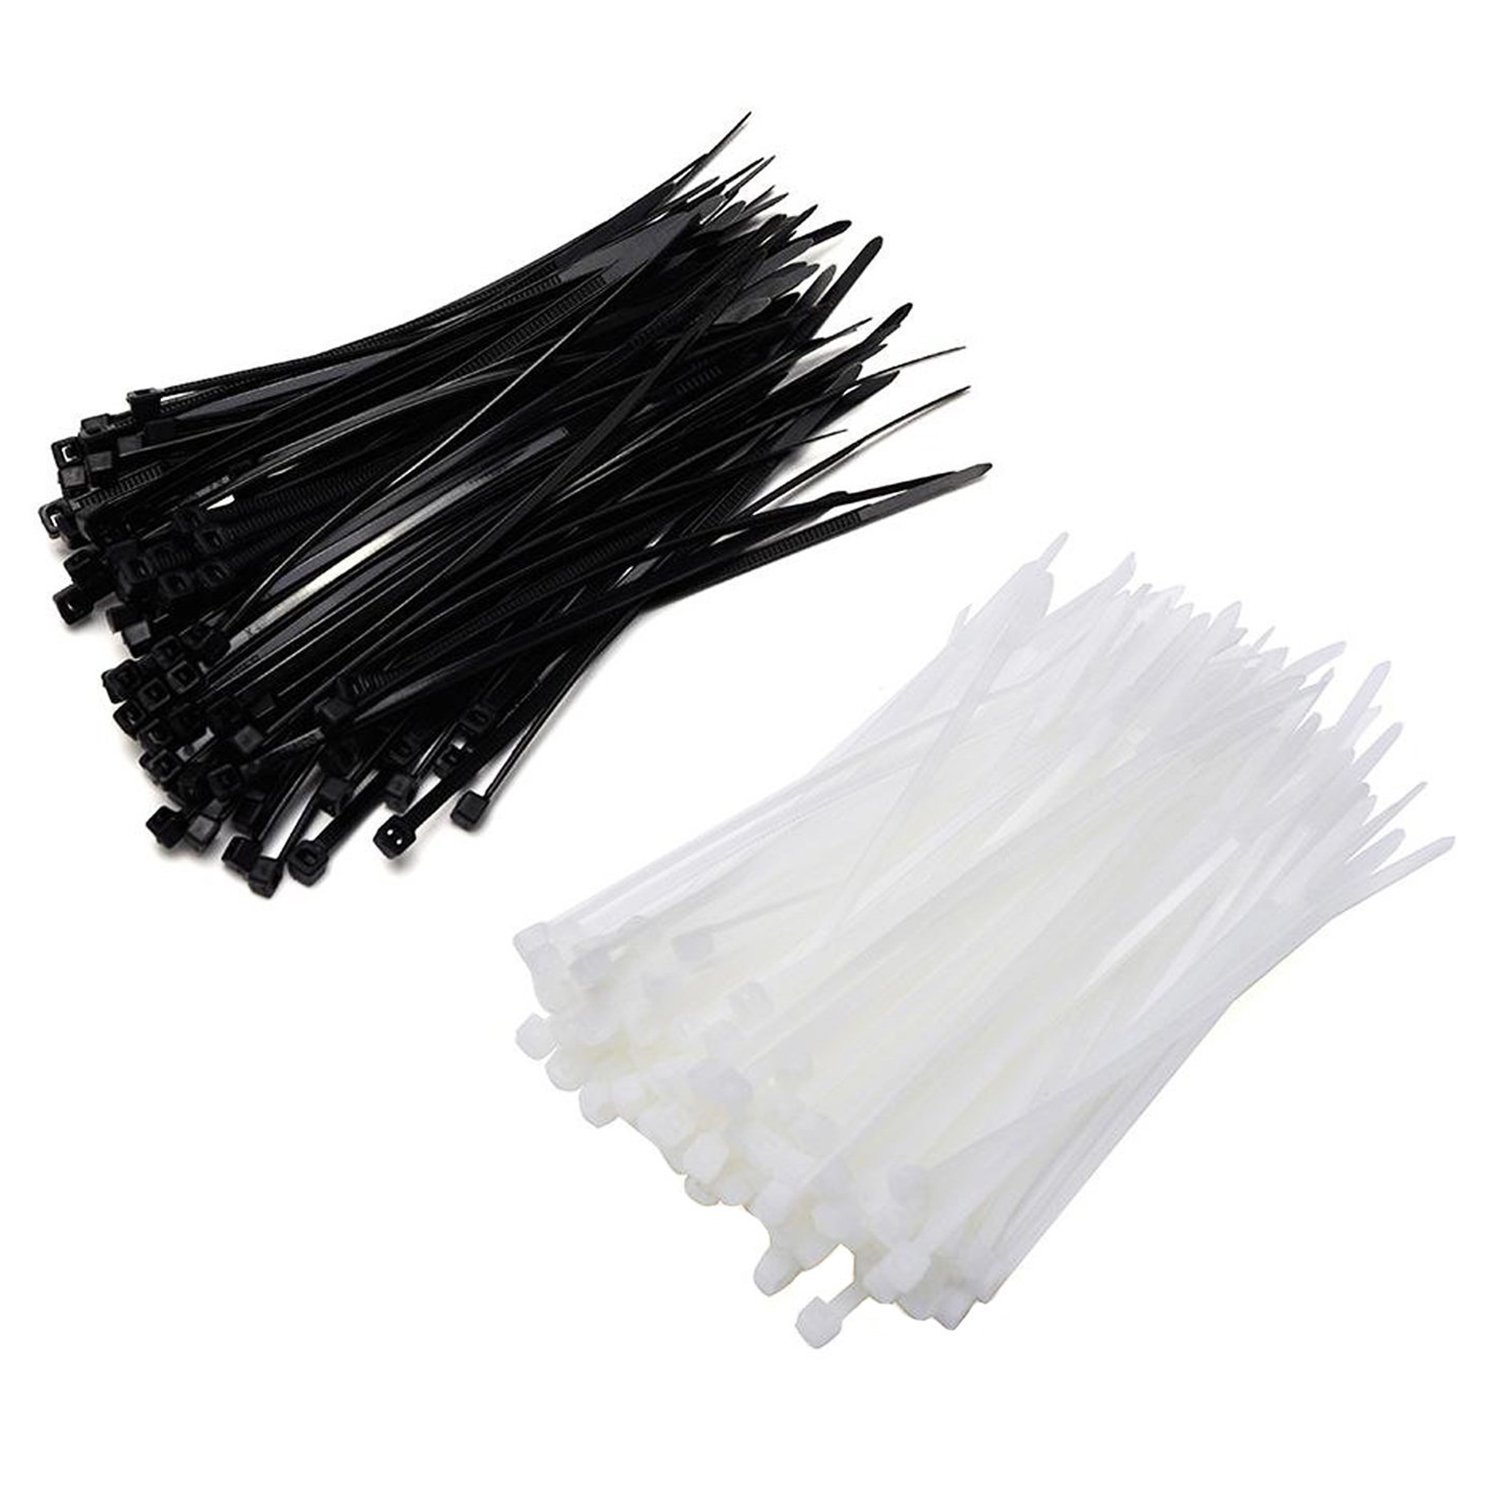 SODIAL(R) 6 Inch Nylon Cable Ties in Black and White, 200 Pieces